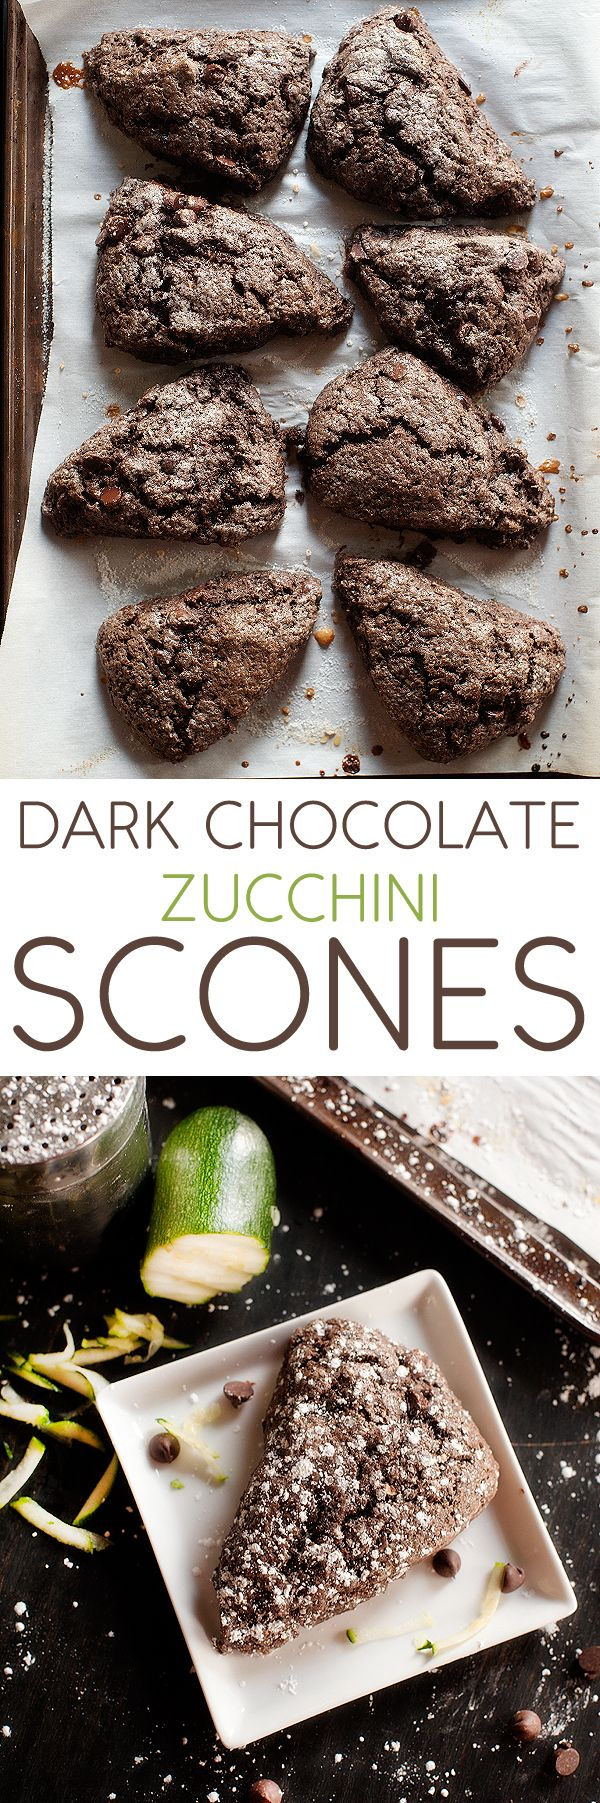 Dark Chocolate Zucchini Scones MADE Sept 2015. More cake like.  Hubby said too much of a dry texture.  my blueberry scone recipie is still the family  favorite.